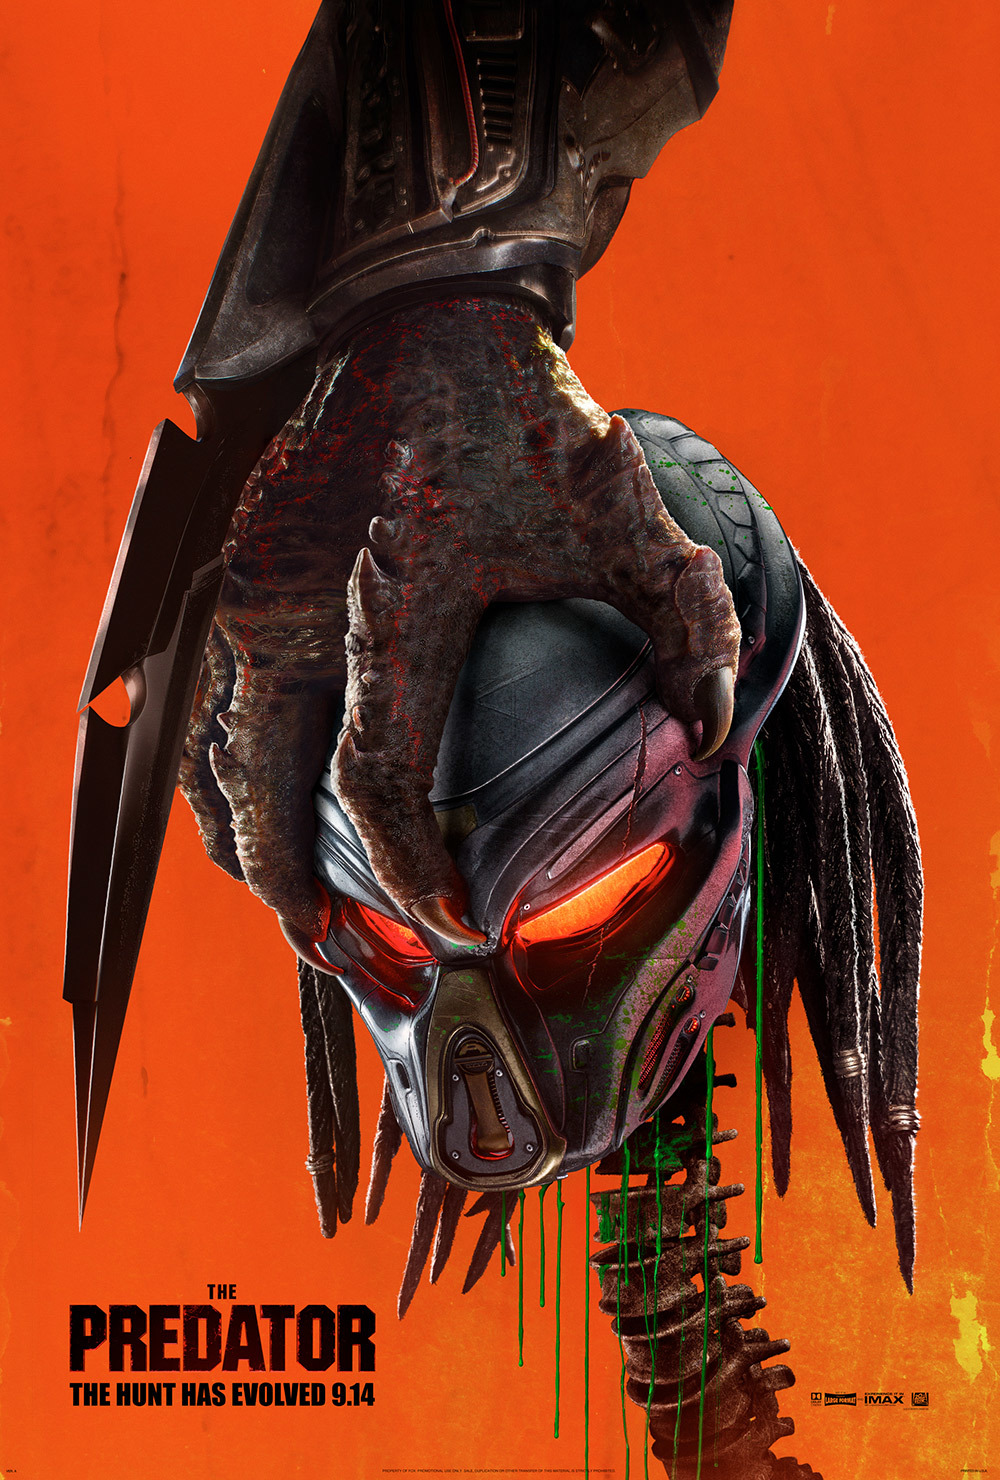 The Predator  poster, with the hand of a large predator holding the trophy head and spine of a smaller predator.